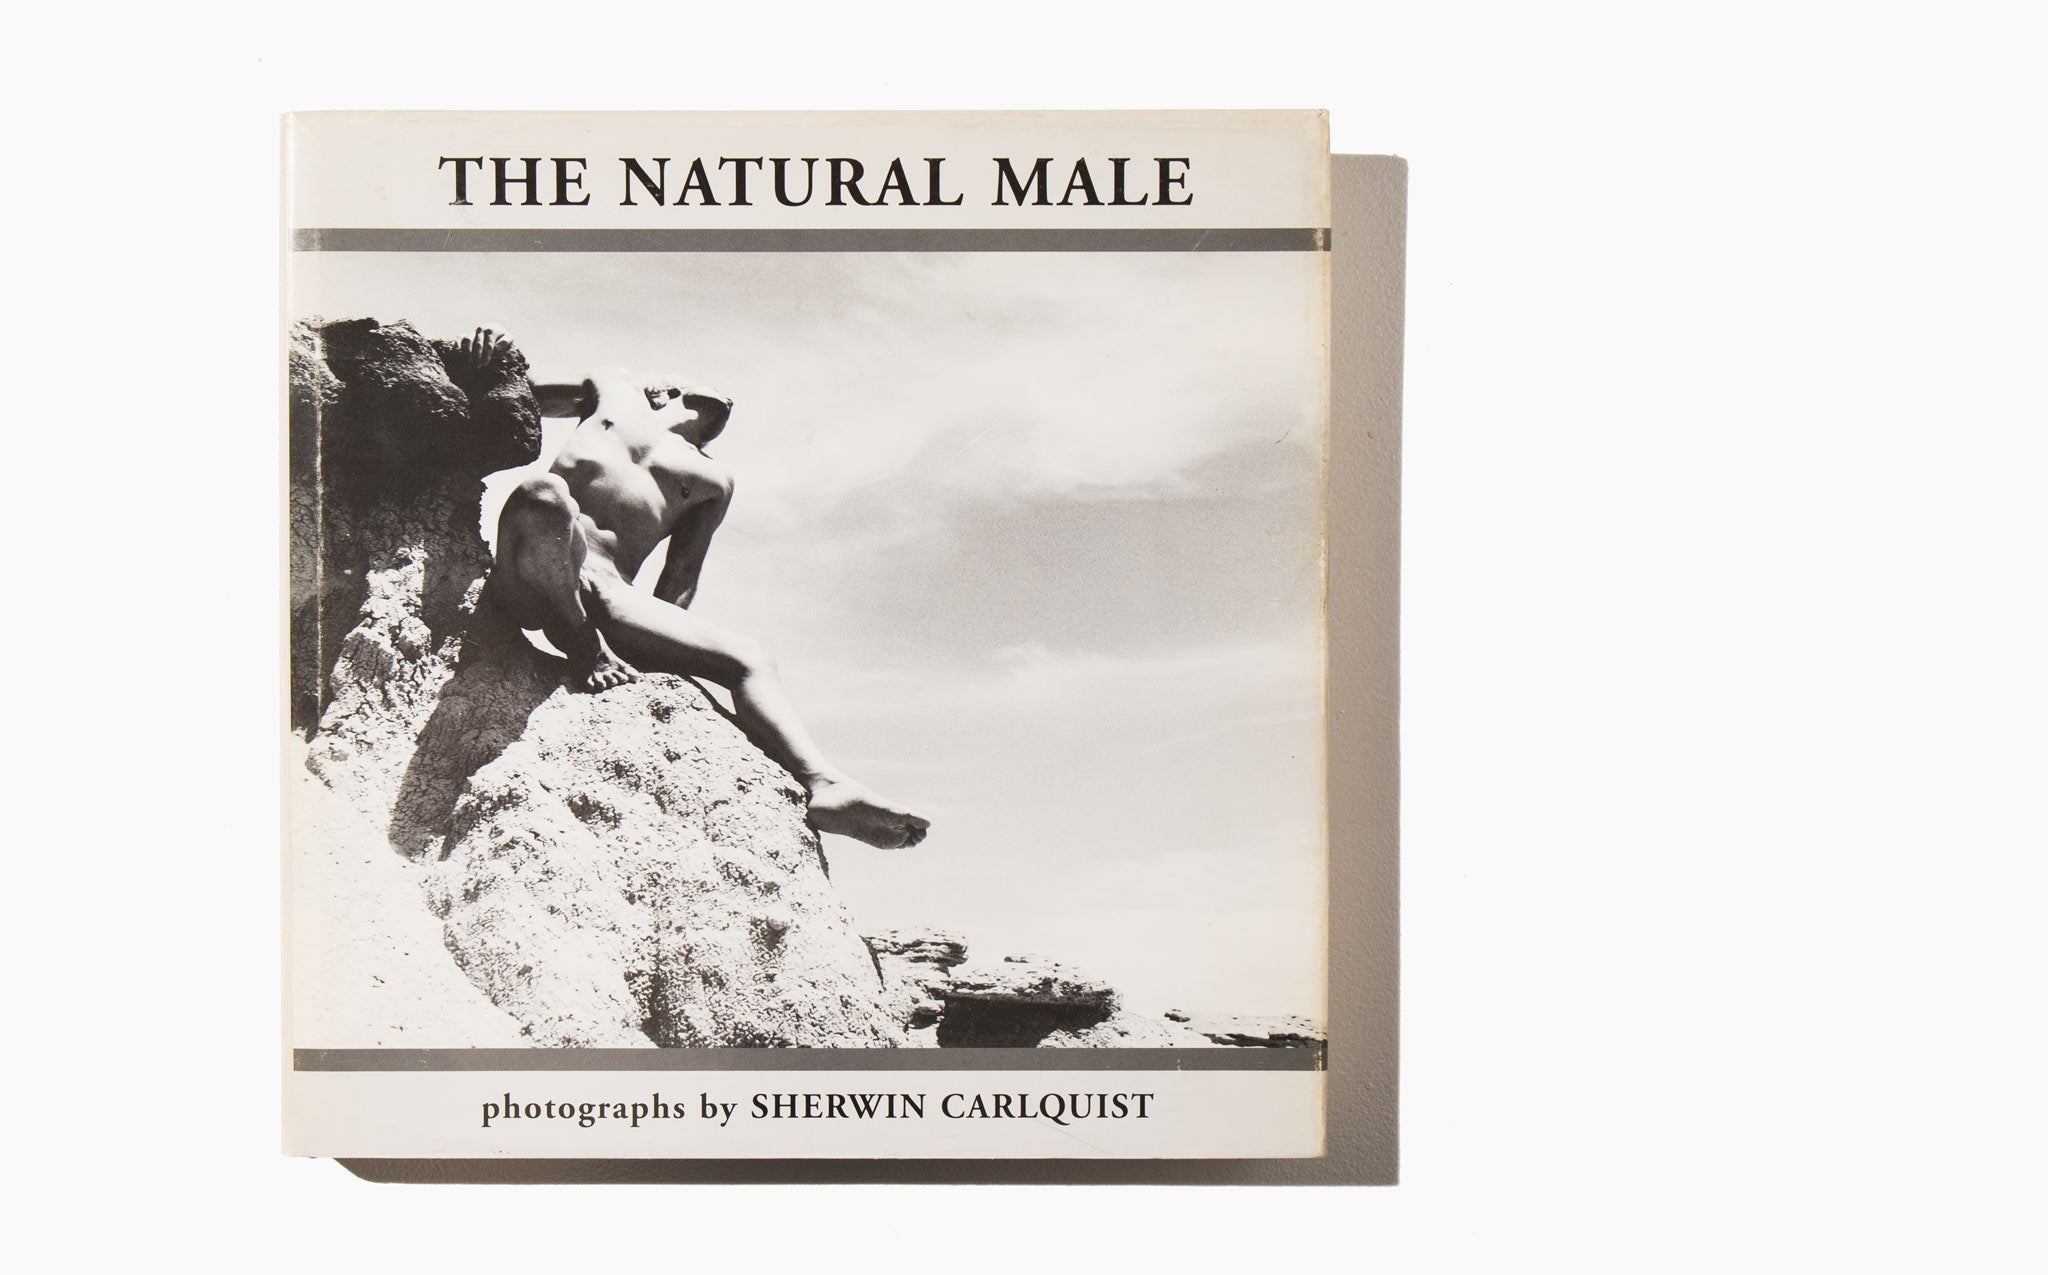 The Natural Male - Sherwin Carlquist (signed)